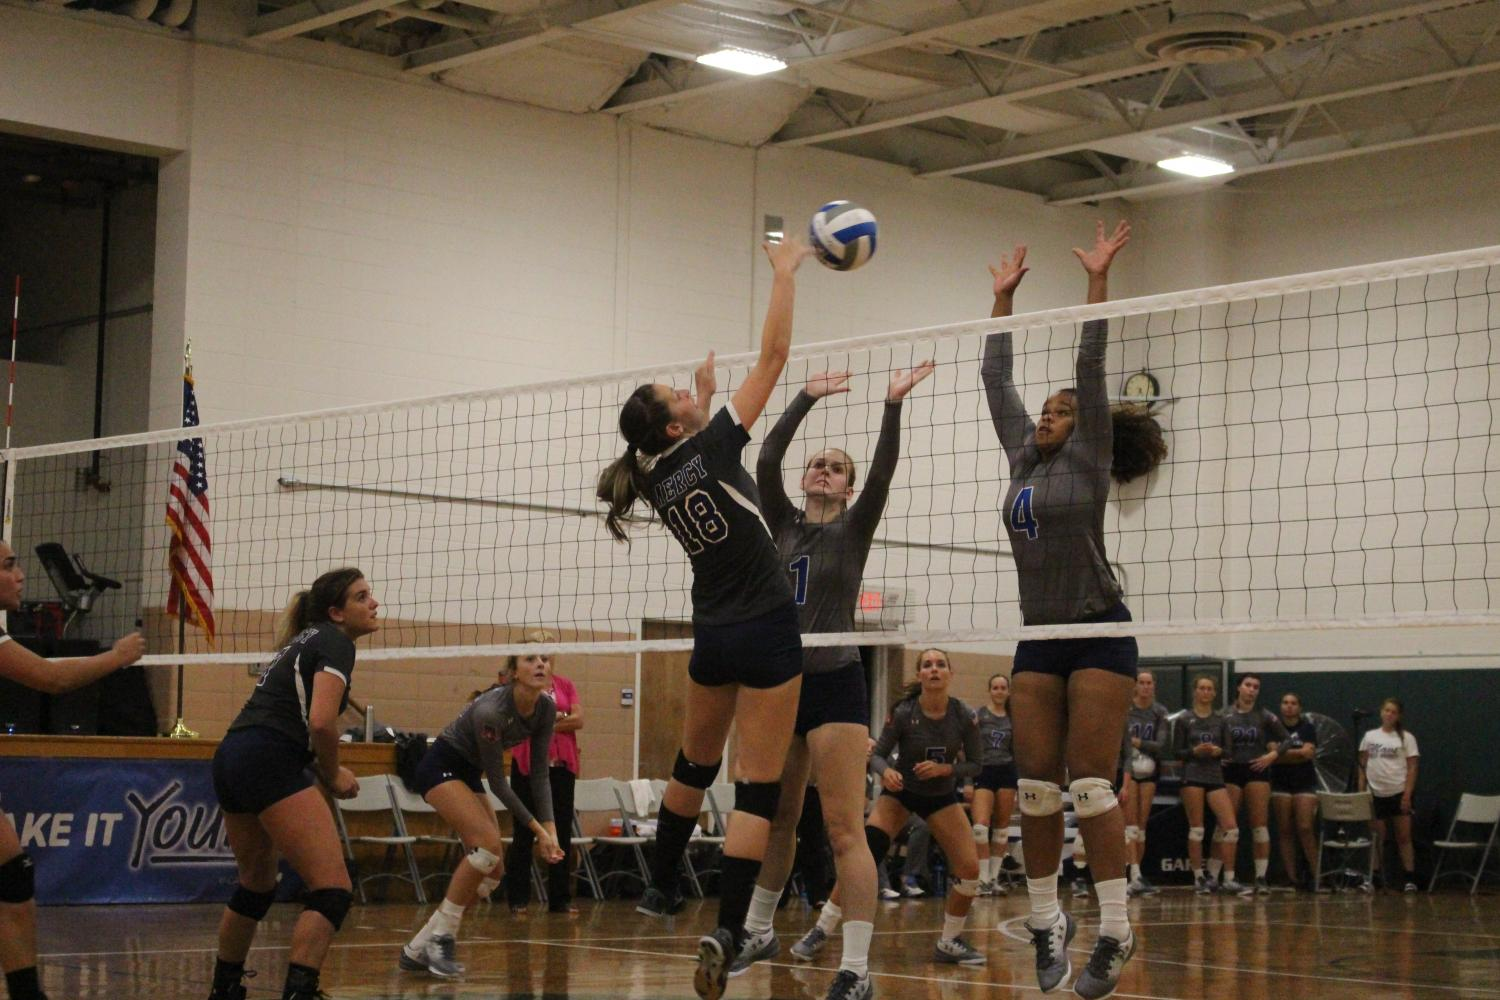 Danielle Sarasky is a force to be reckoned with near the net.